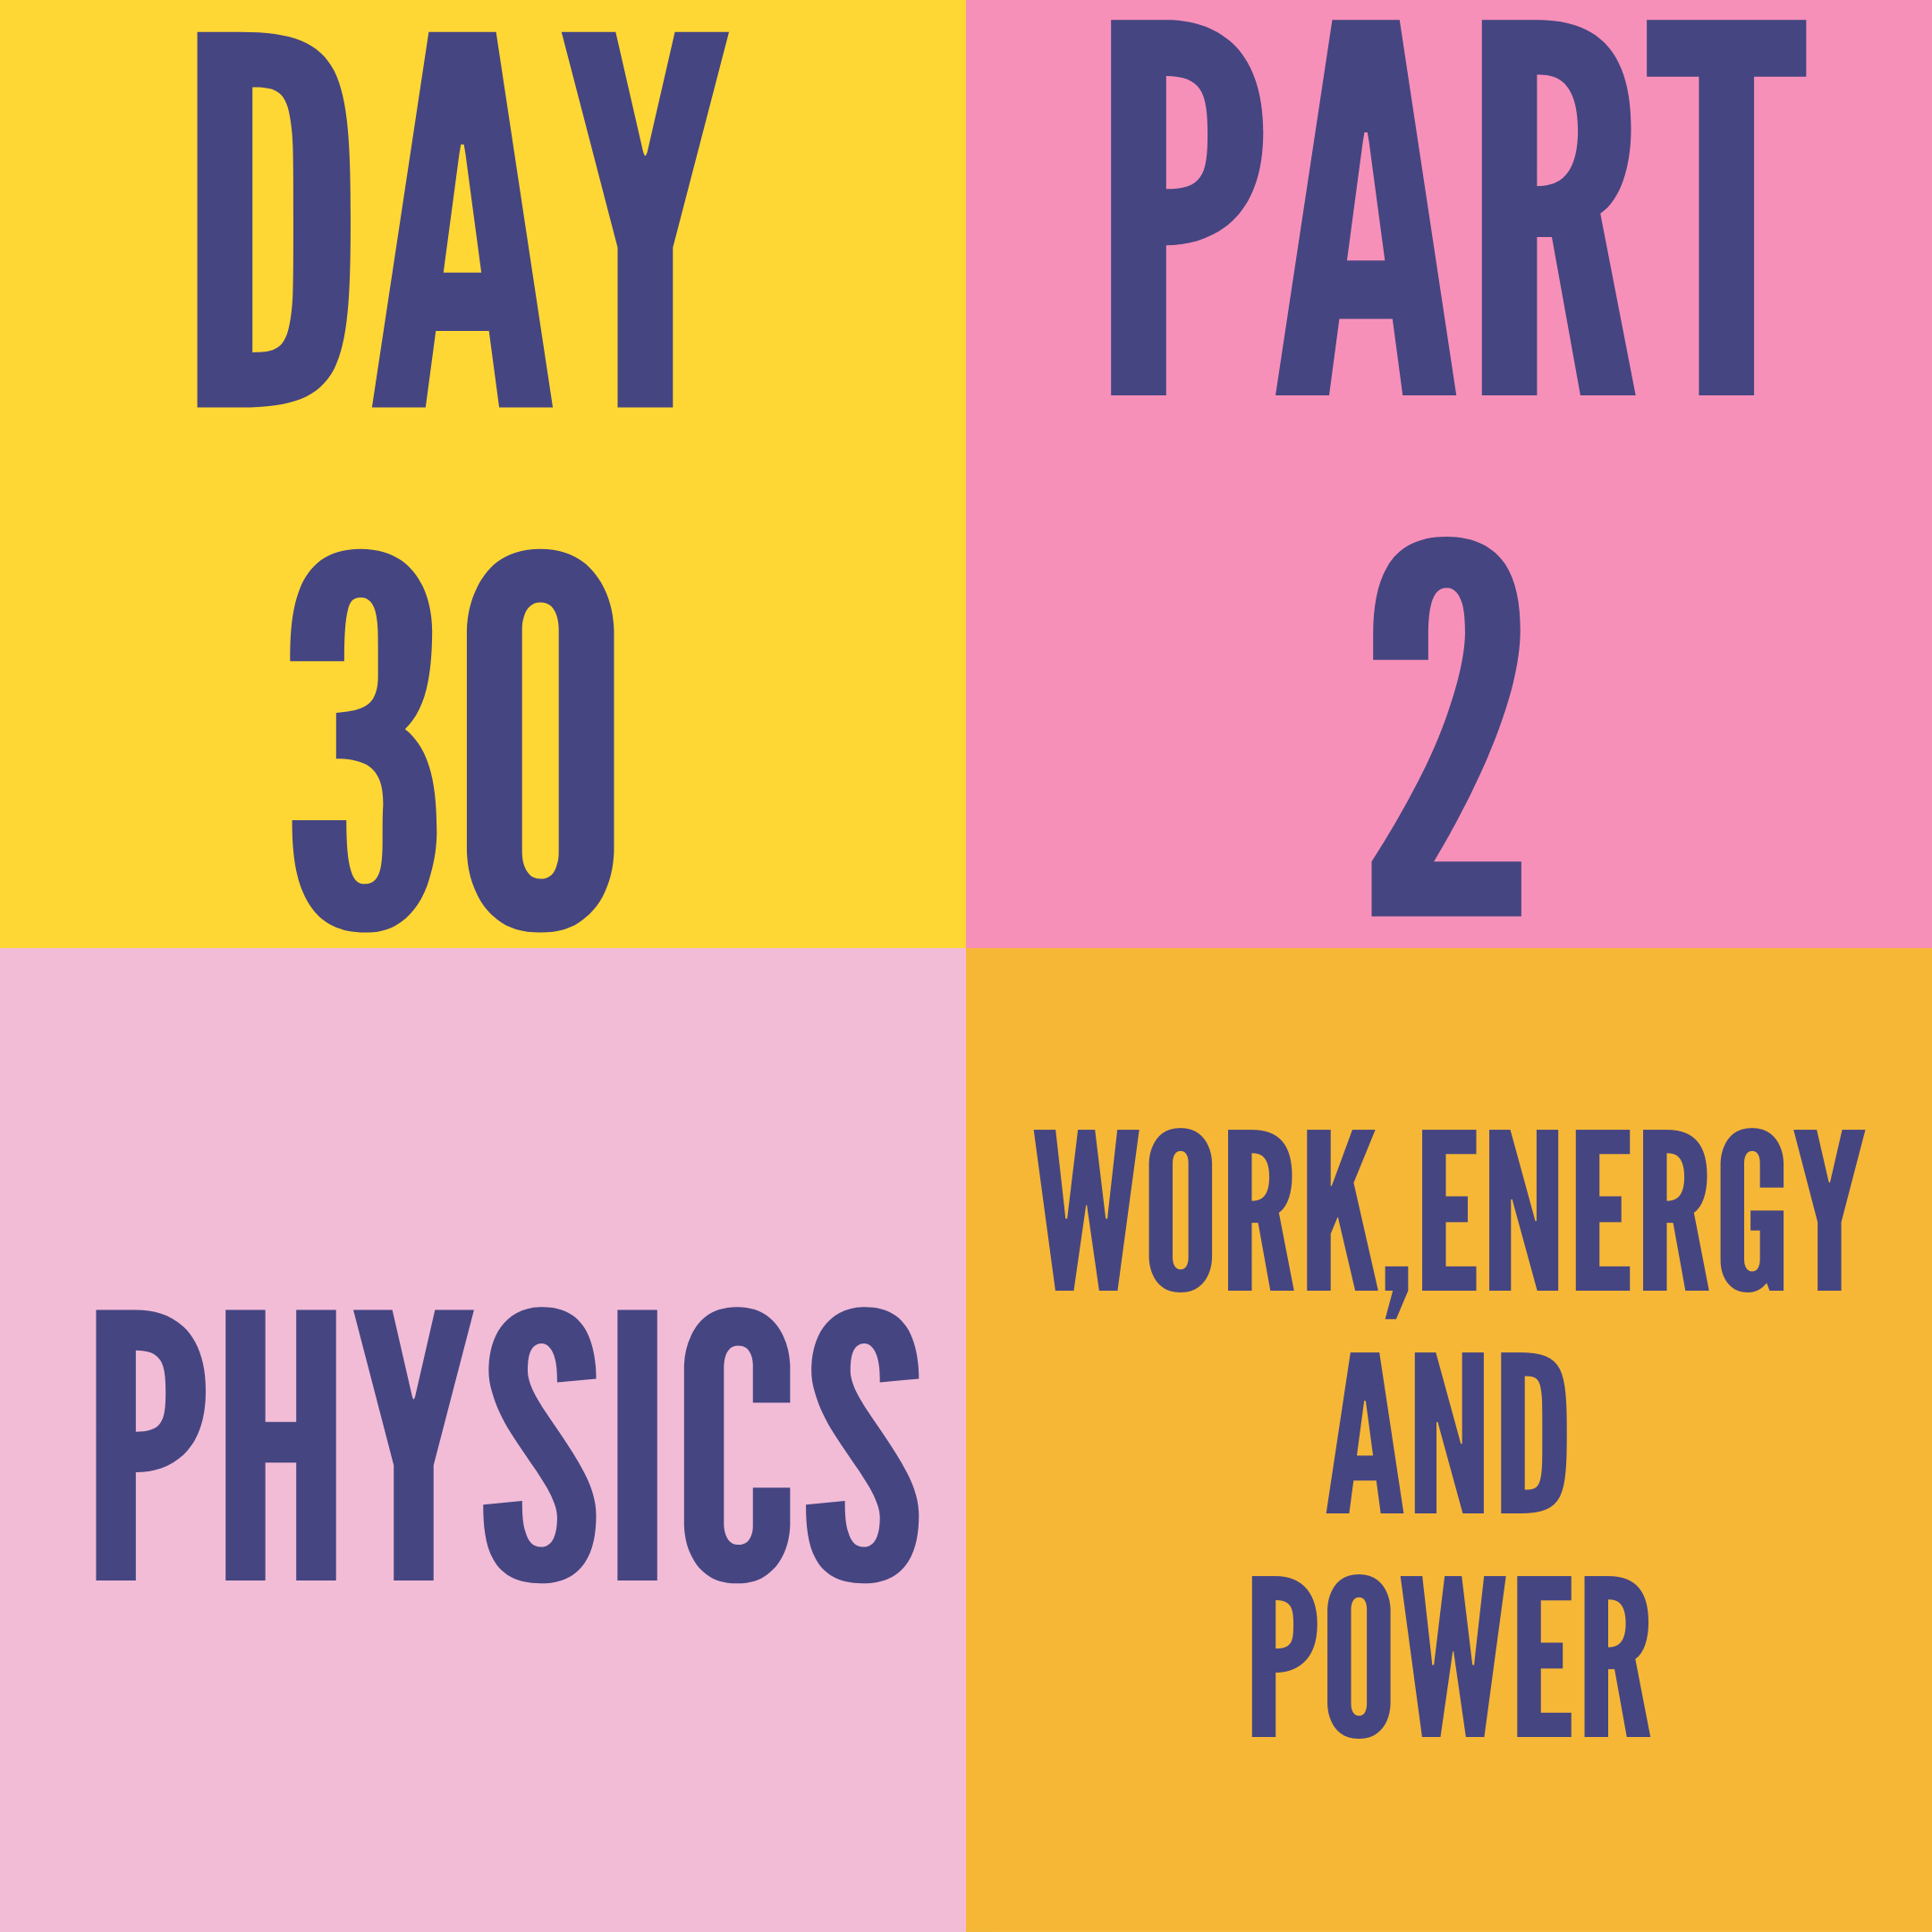 DAY-30 PART-2 WORK,ENERGY AND POWER